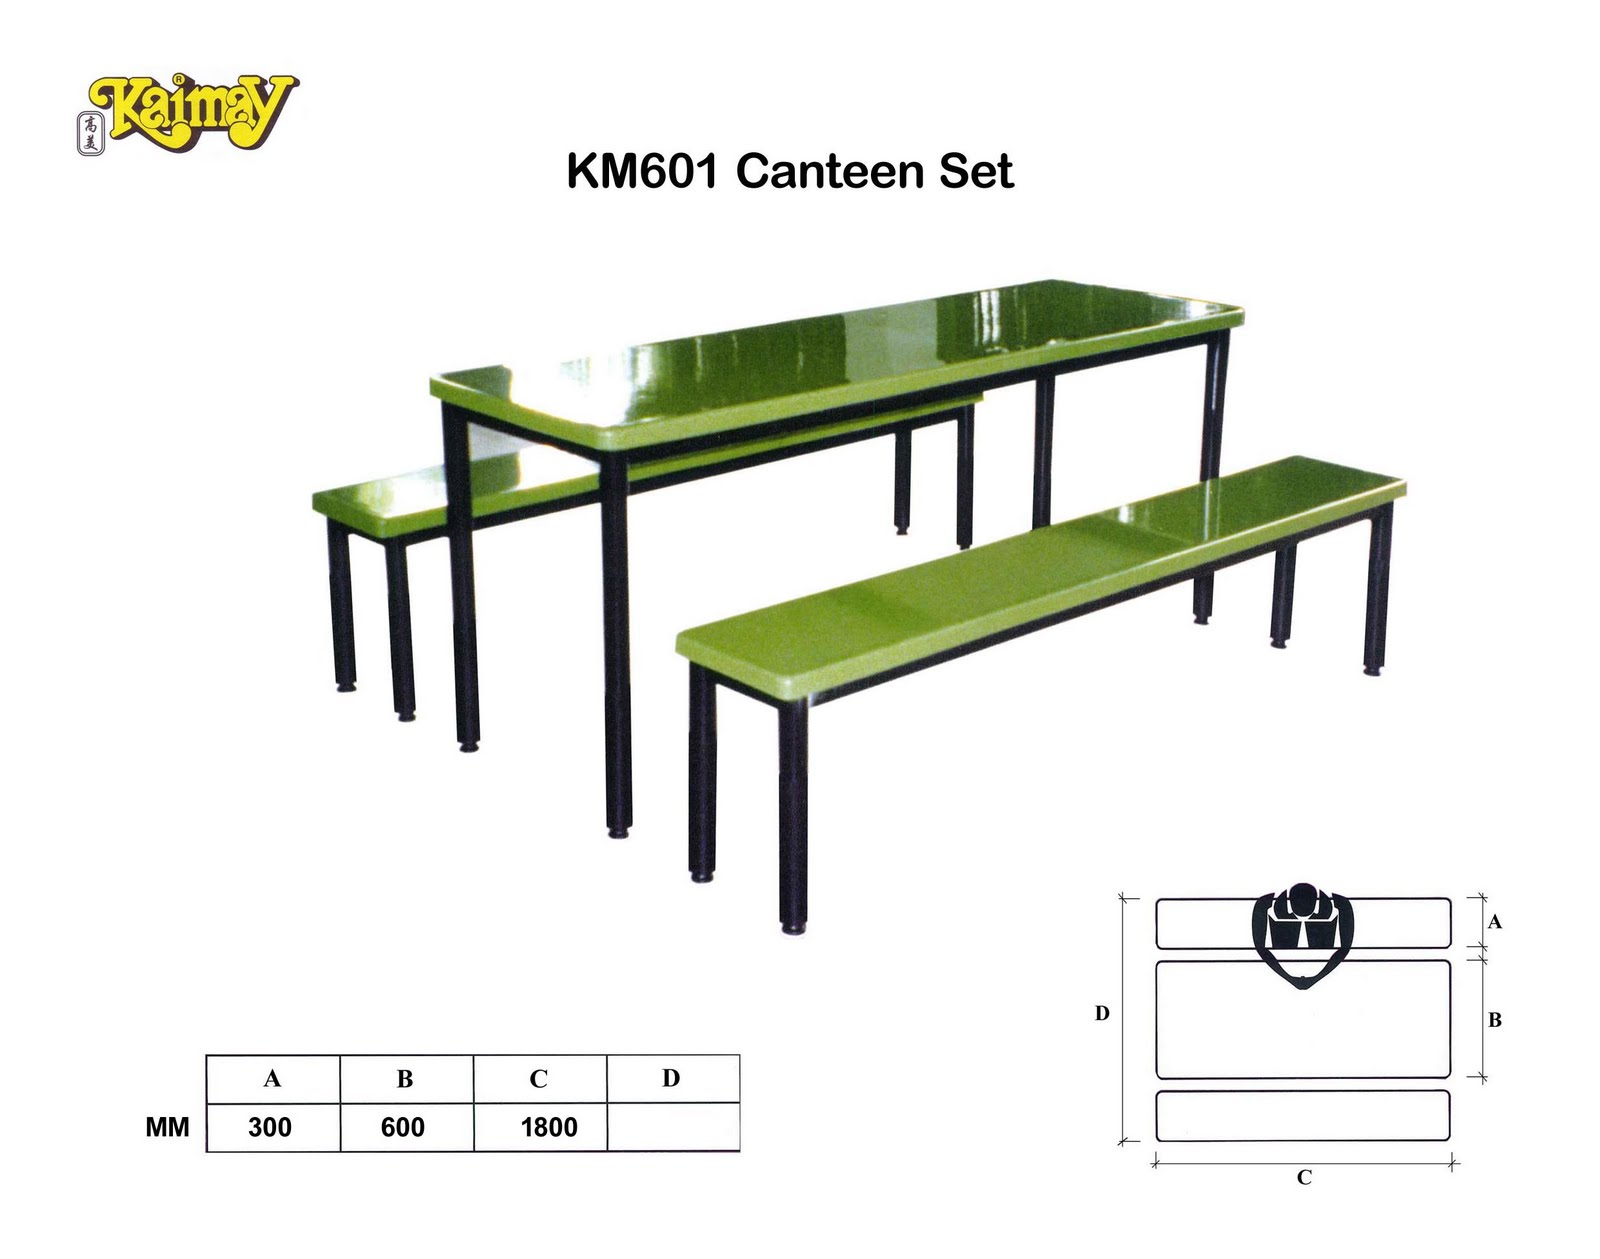 KAIMAY TRADING PTE LTD Projects Wholesaler Canteen Set